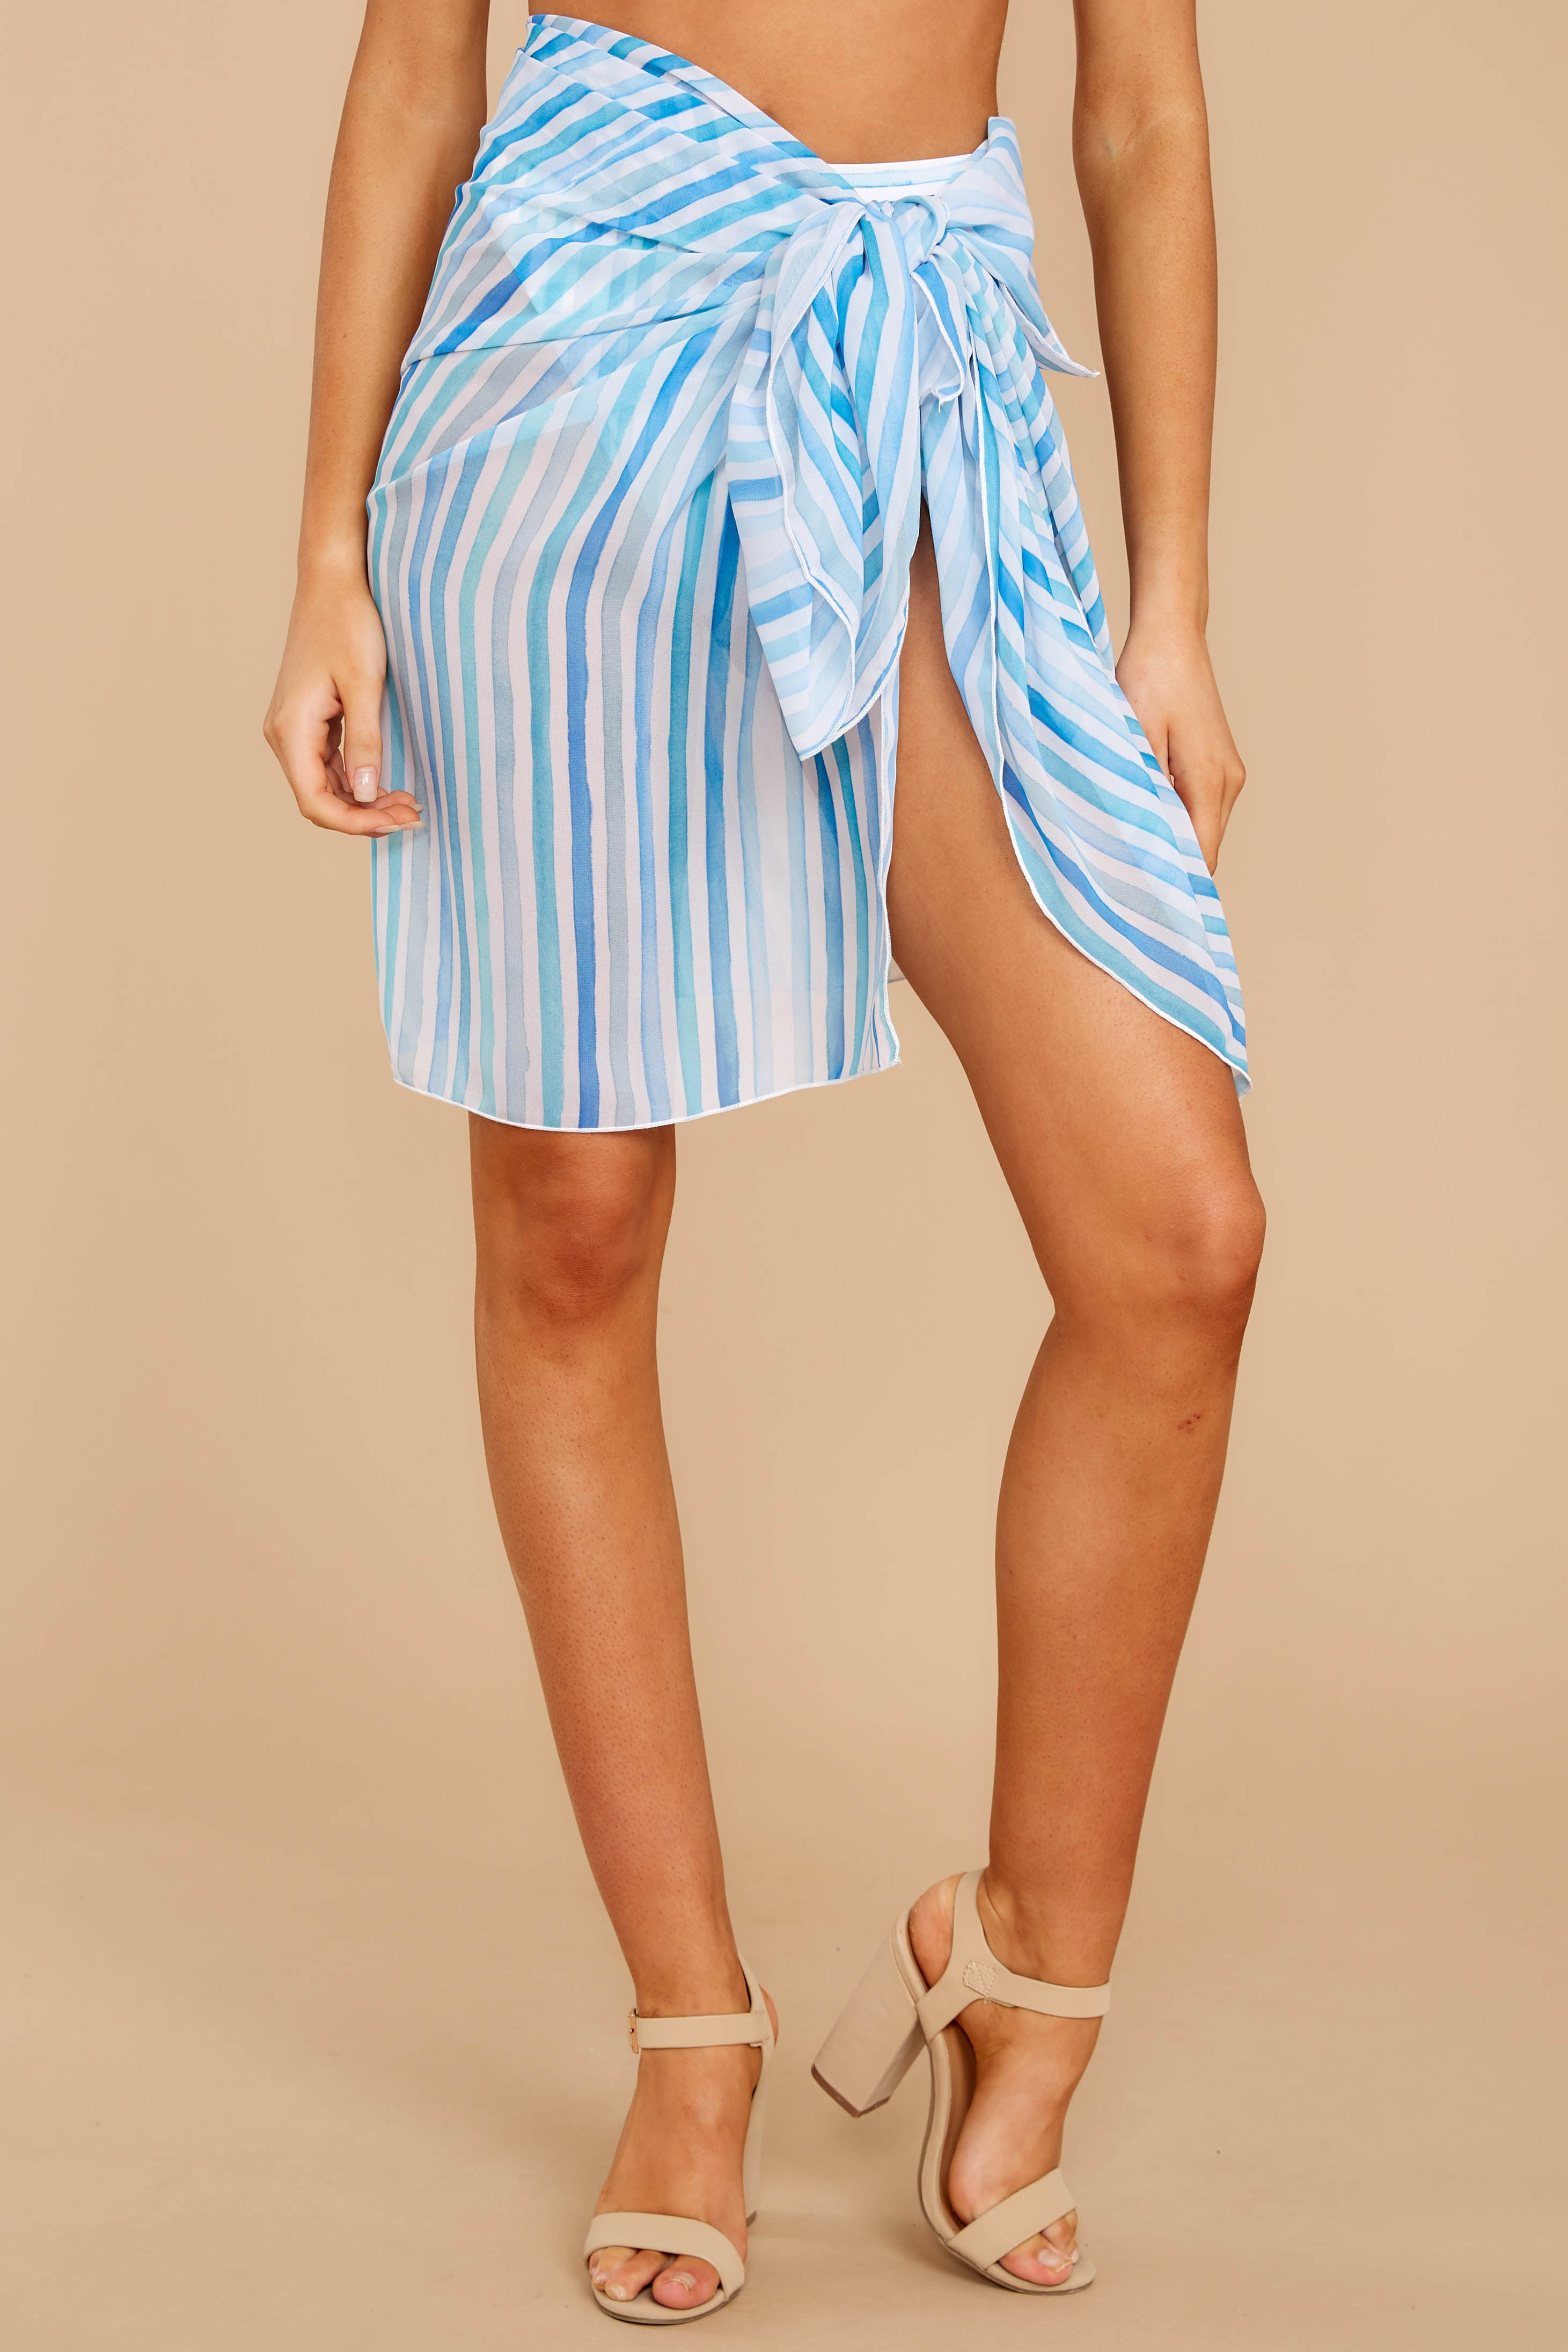 Tropic Trends Blue Multi Seaside Stripe Sarong